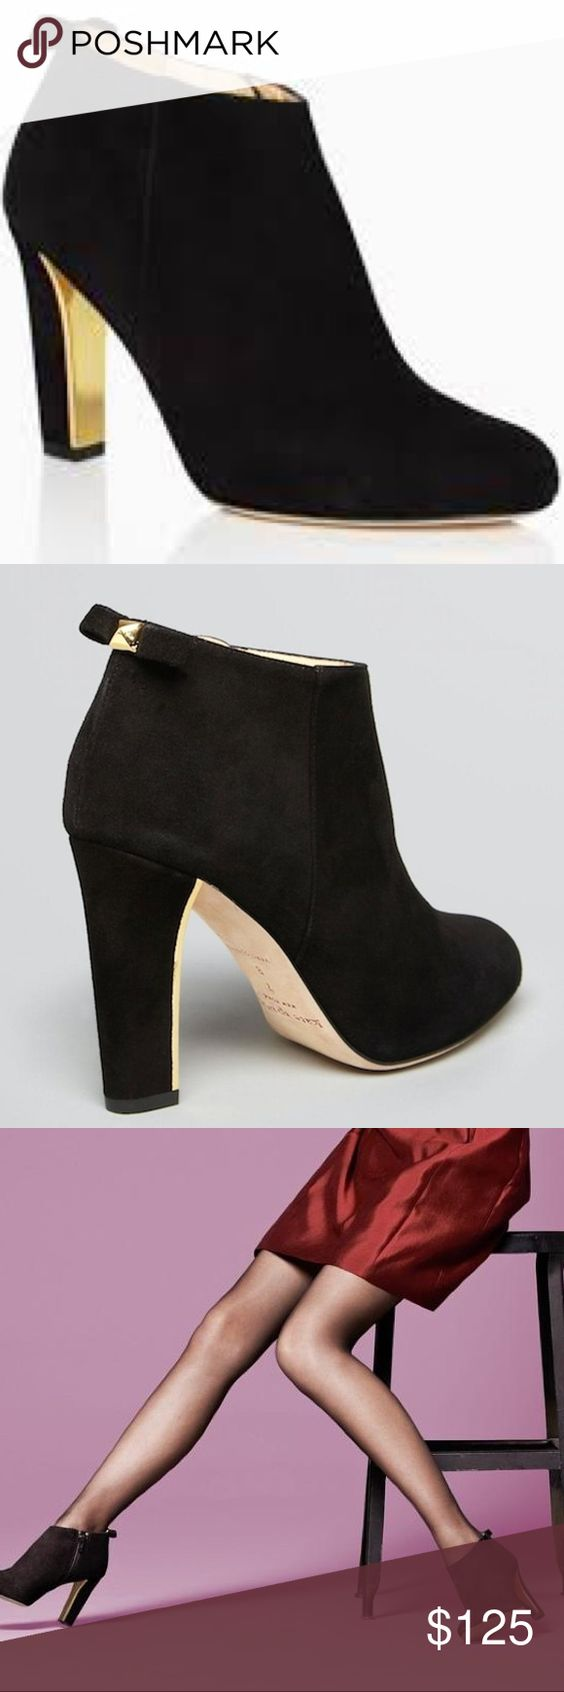 Kate Spade Black Suede Ankle Booties Excellent used condition. Used twice. Great for skirts dresses or jeans and pants. Cute gold accents!! kate spade Shoes Ankle Boots & Booties